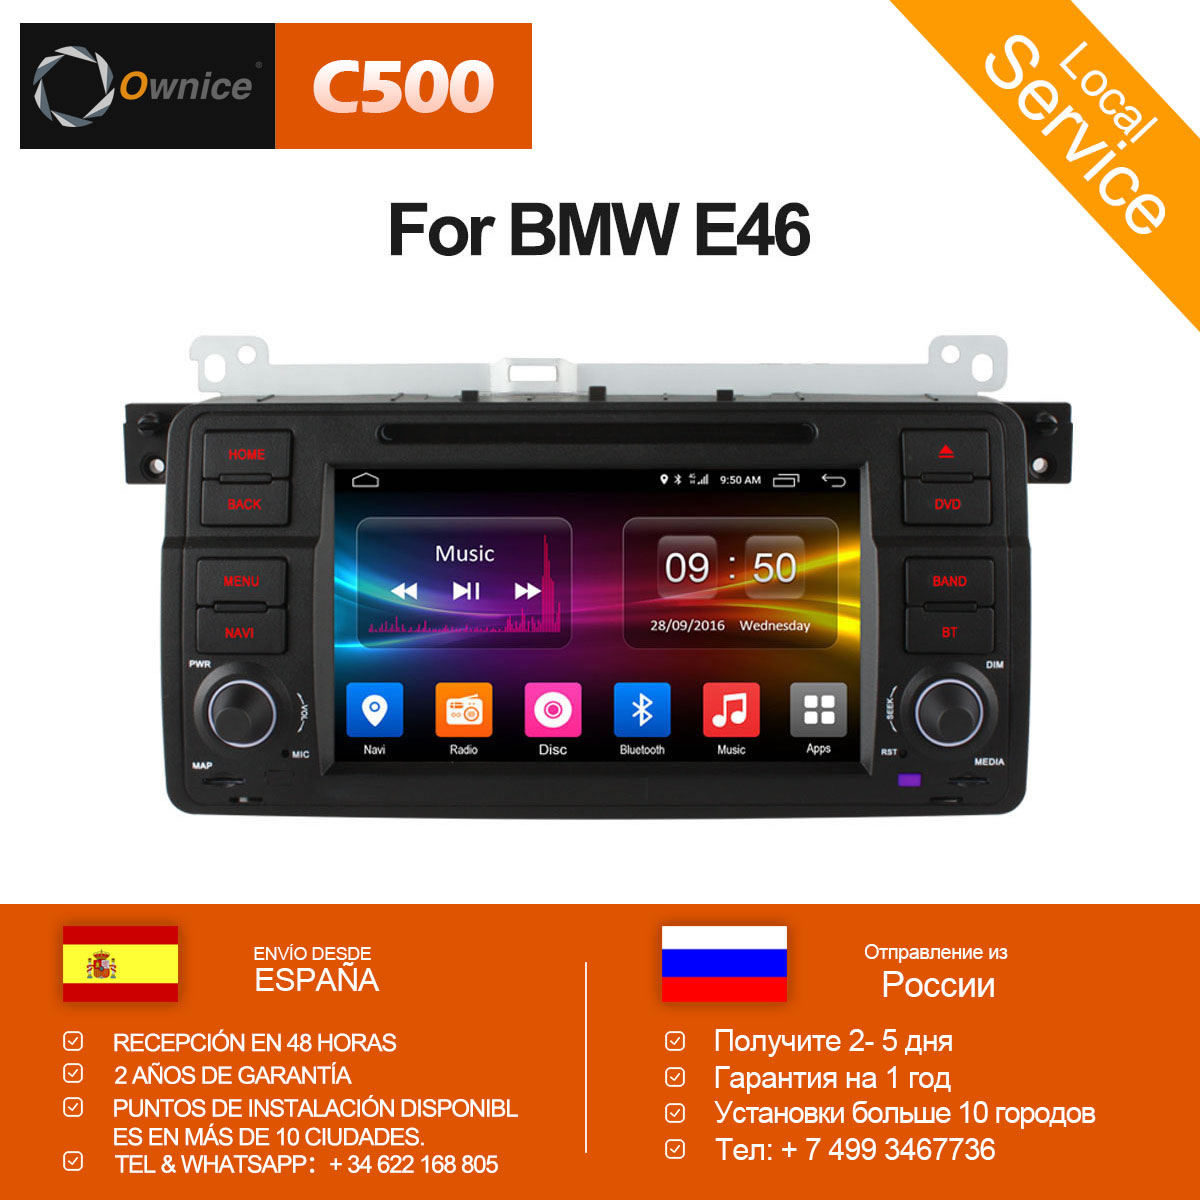 Ownice C500 Android 6.0 Octa 8 Core for bmw E46 M3 car dvd gps navi wifi 4G BT Radio RDS 2GB RAM 32GB ROM support DAB+ TPMS 2gb 32gb 8 8 android 7 1 car dvd player for bmw series 5 e60 e61 e62 gps navi idrive wifi bluetooth radio rds free camera map